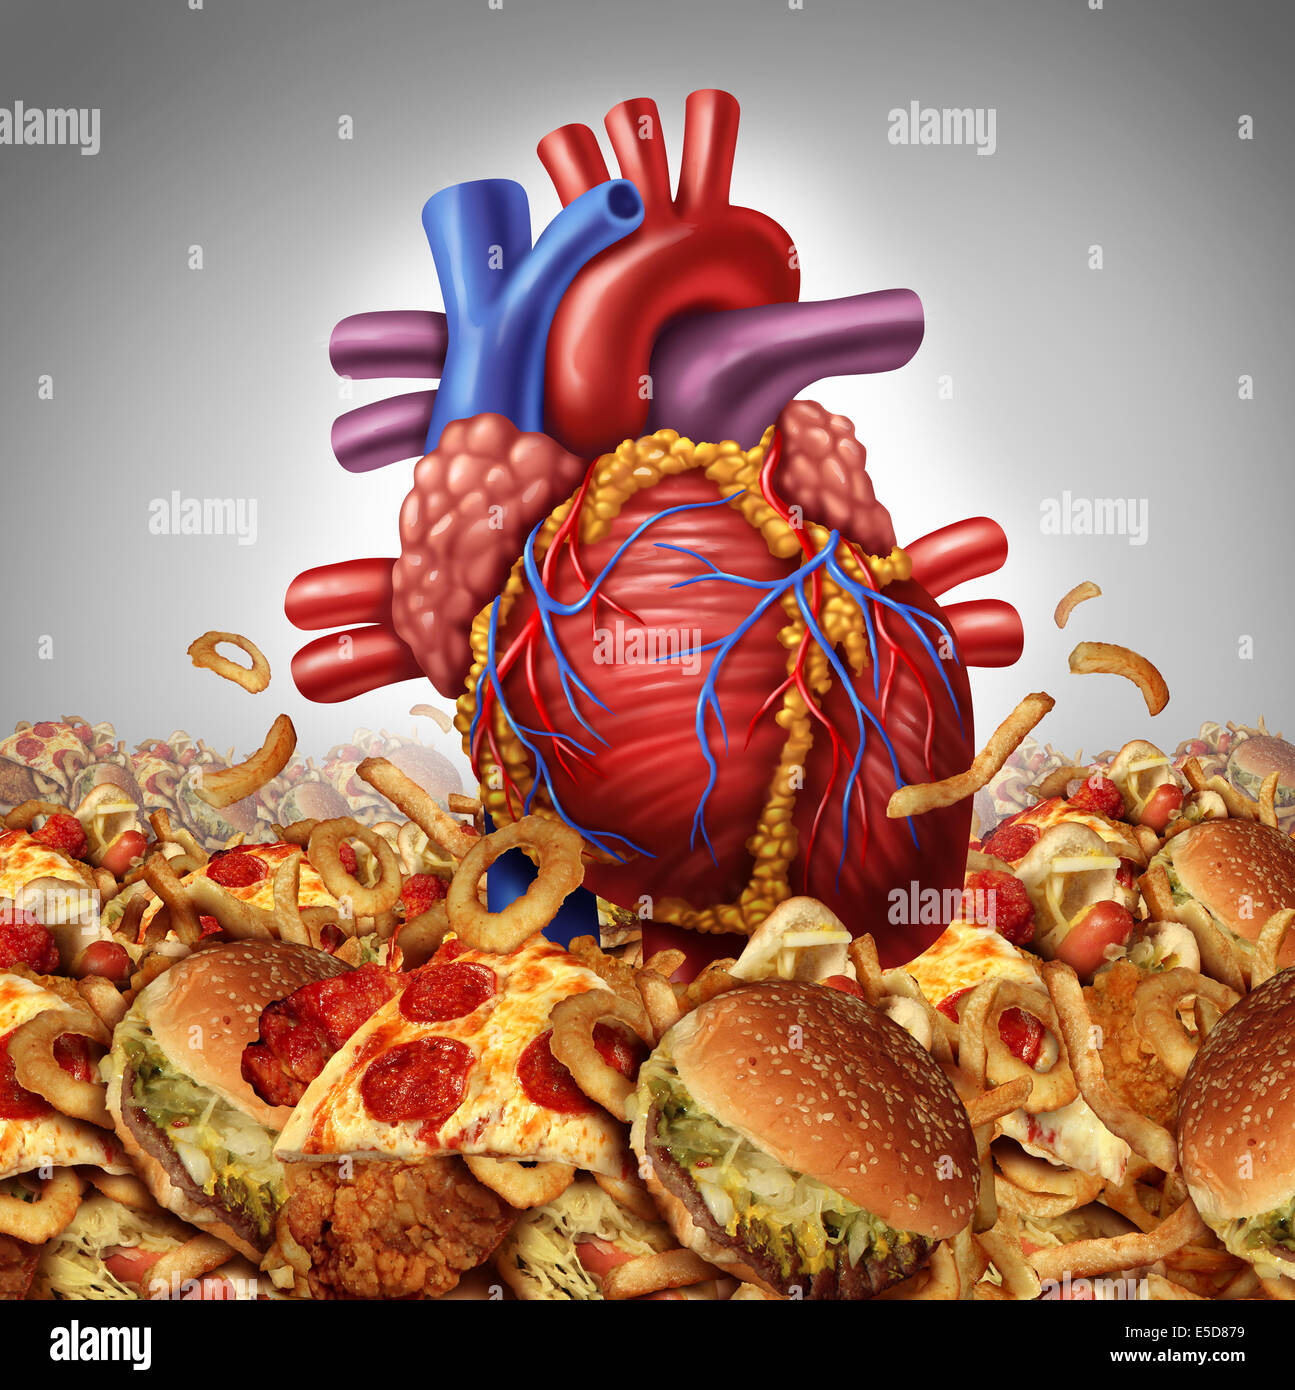 Heart disease risk  symbol and health care and nutrition concept as a human cardiovascular organ drowning in an - Stock Image